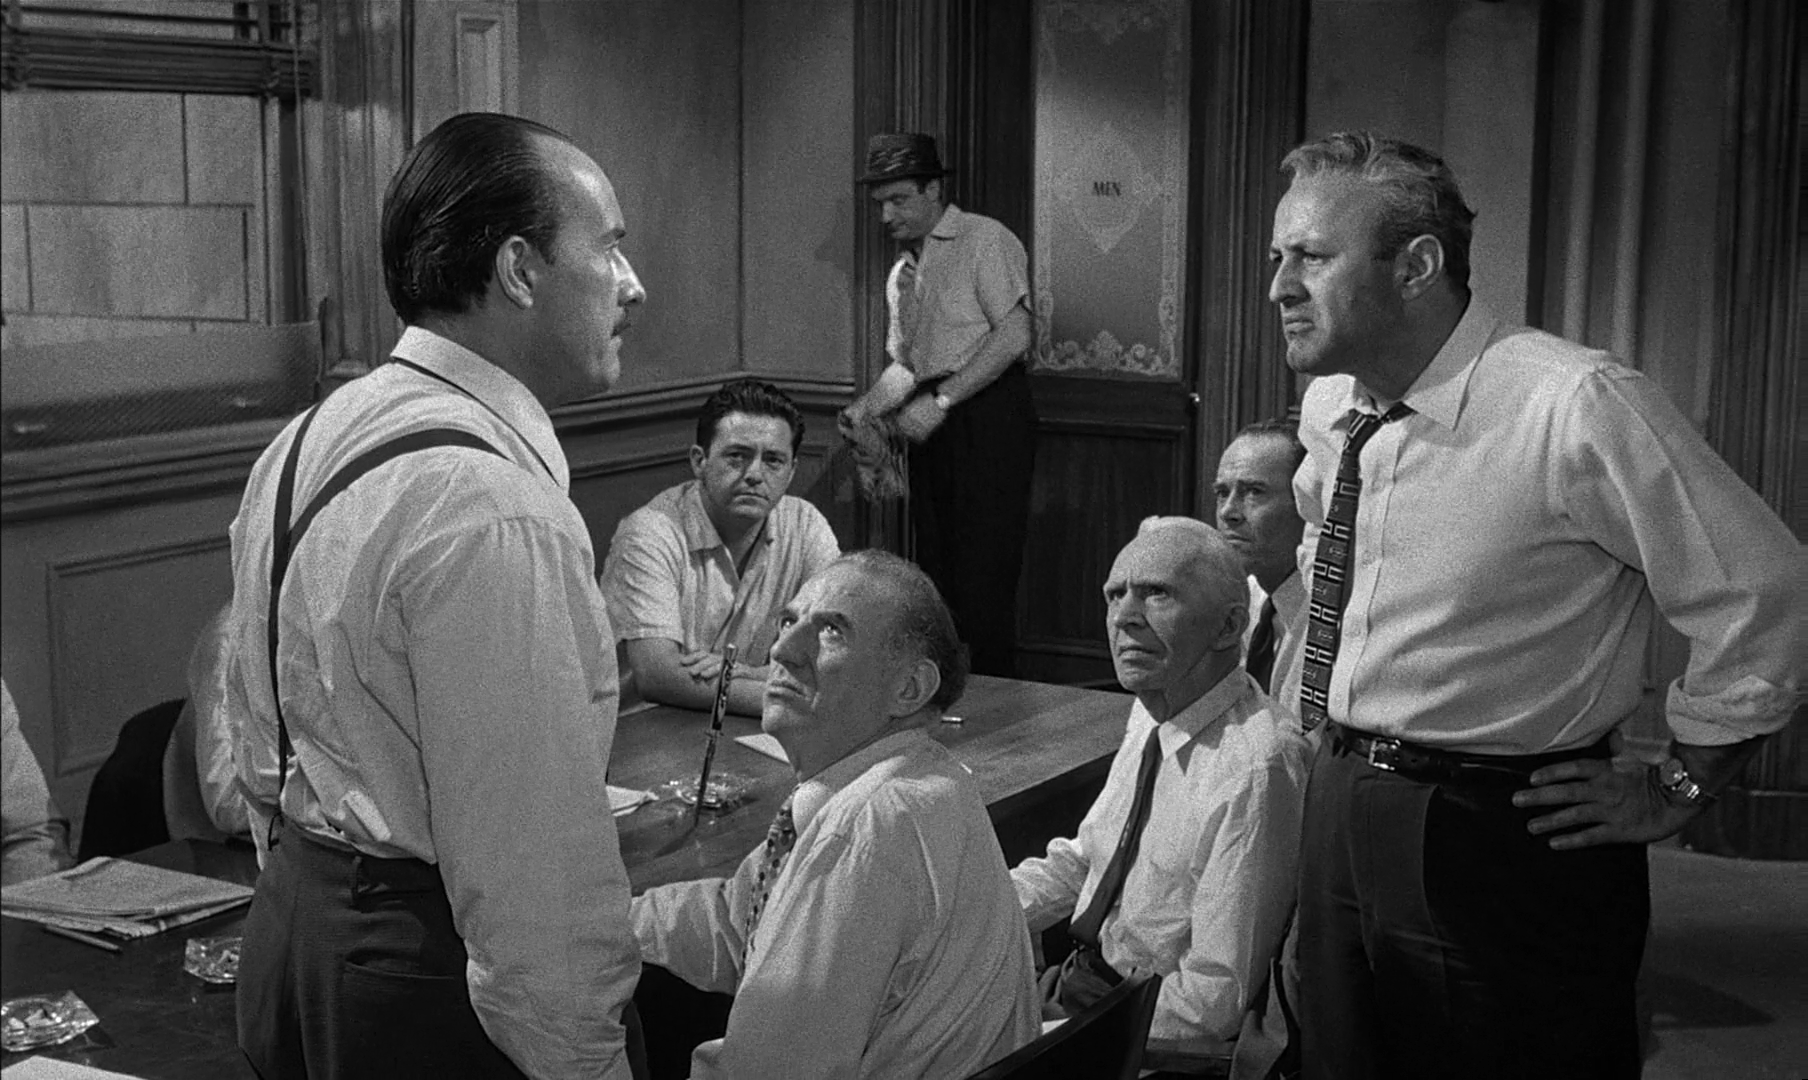 12 angry men movie Watch 12 angry men full movie online free on 123movies with english subtitle stream 12 angry men online free in hd on 123movies a jury holdout attempts to prevent a miscarriage of justice by forcing his colleagues to reconsider the evidence.